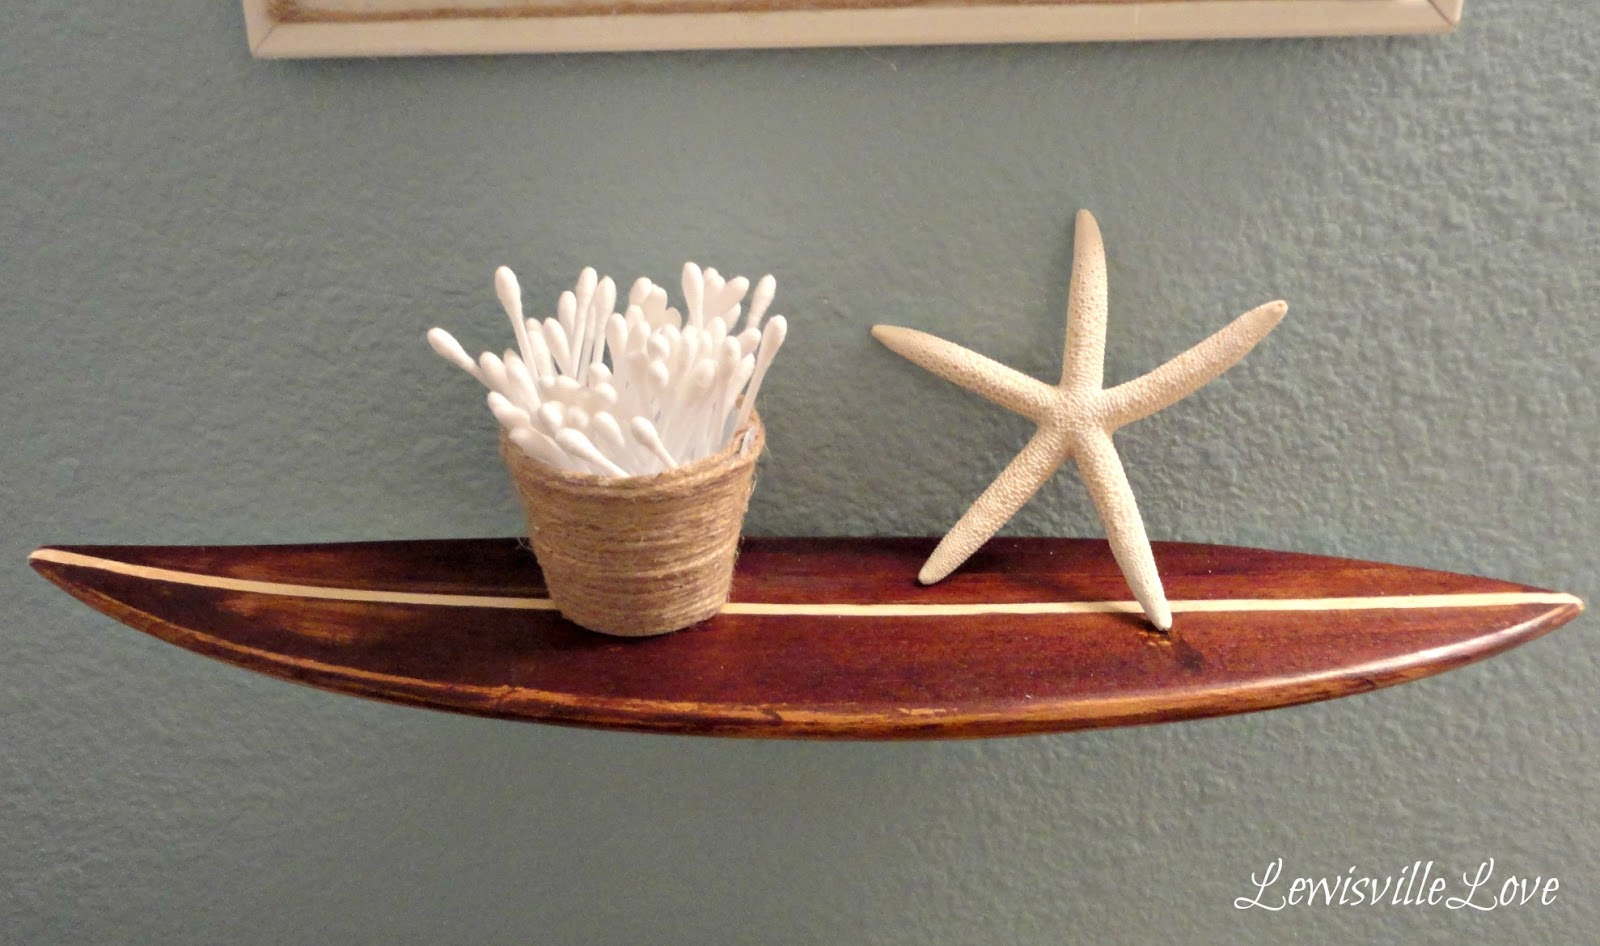 Lewisville Love Surf Board Shelf For The Beach Bathroom